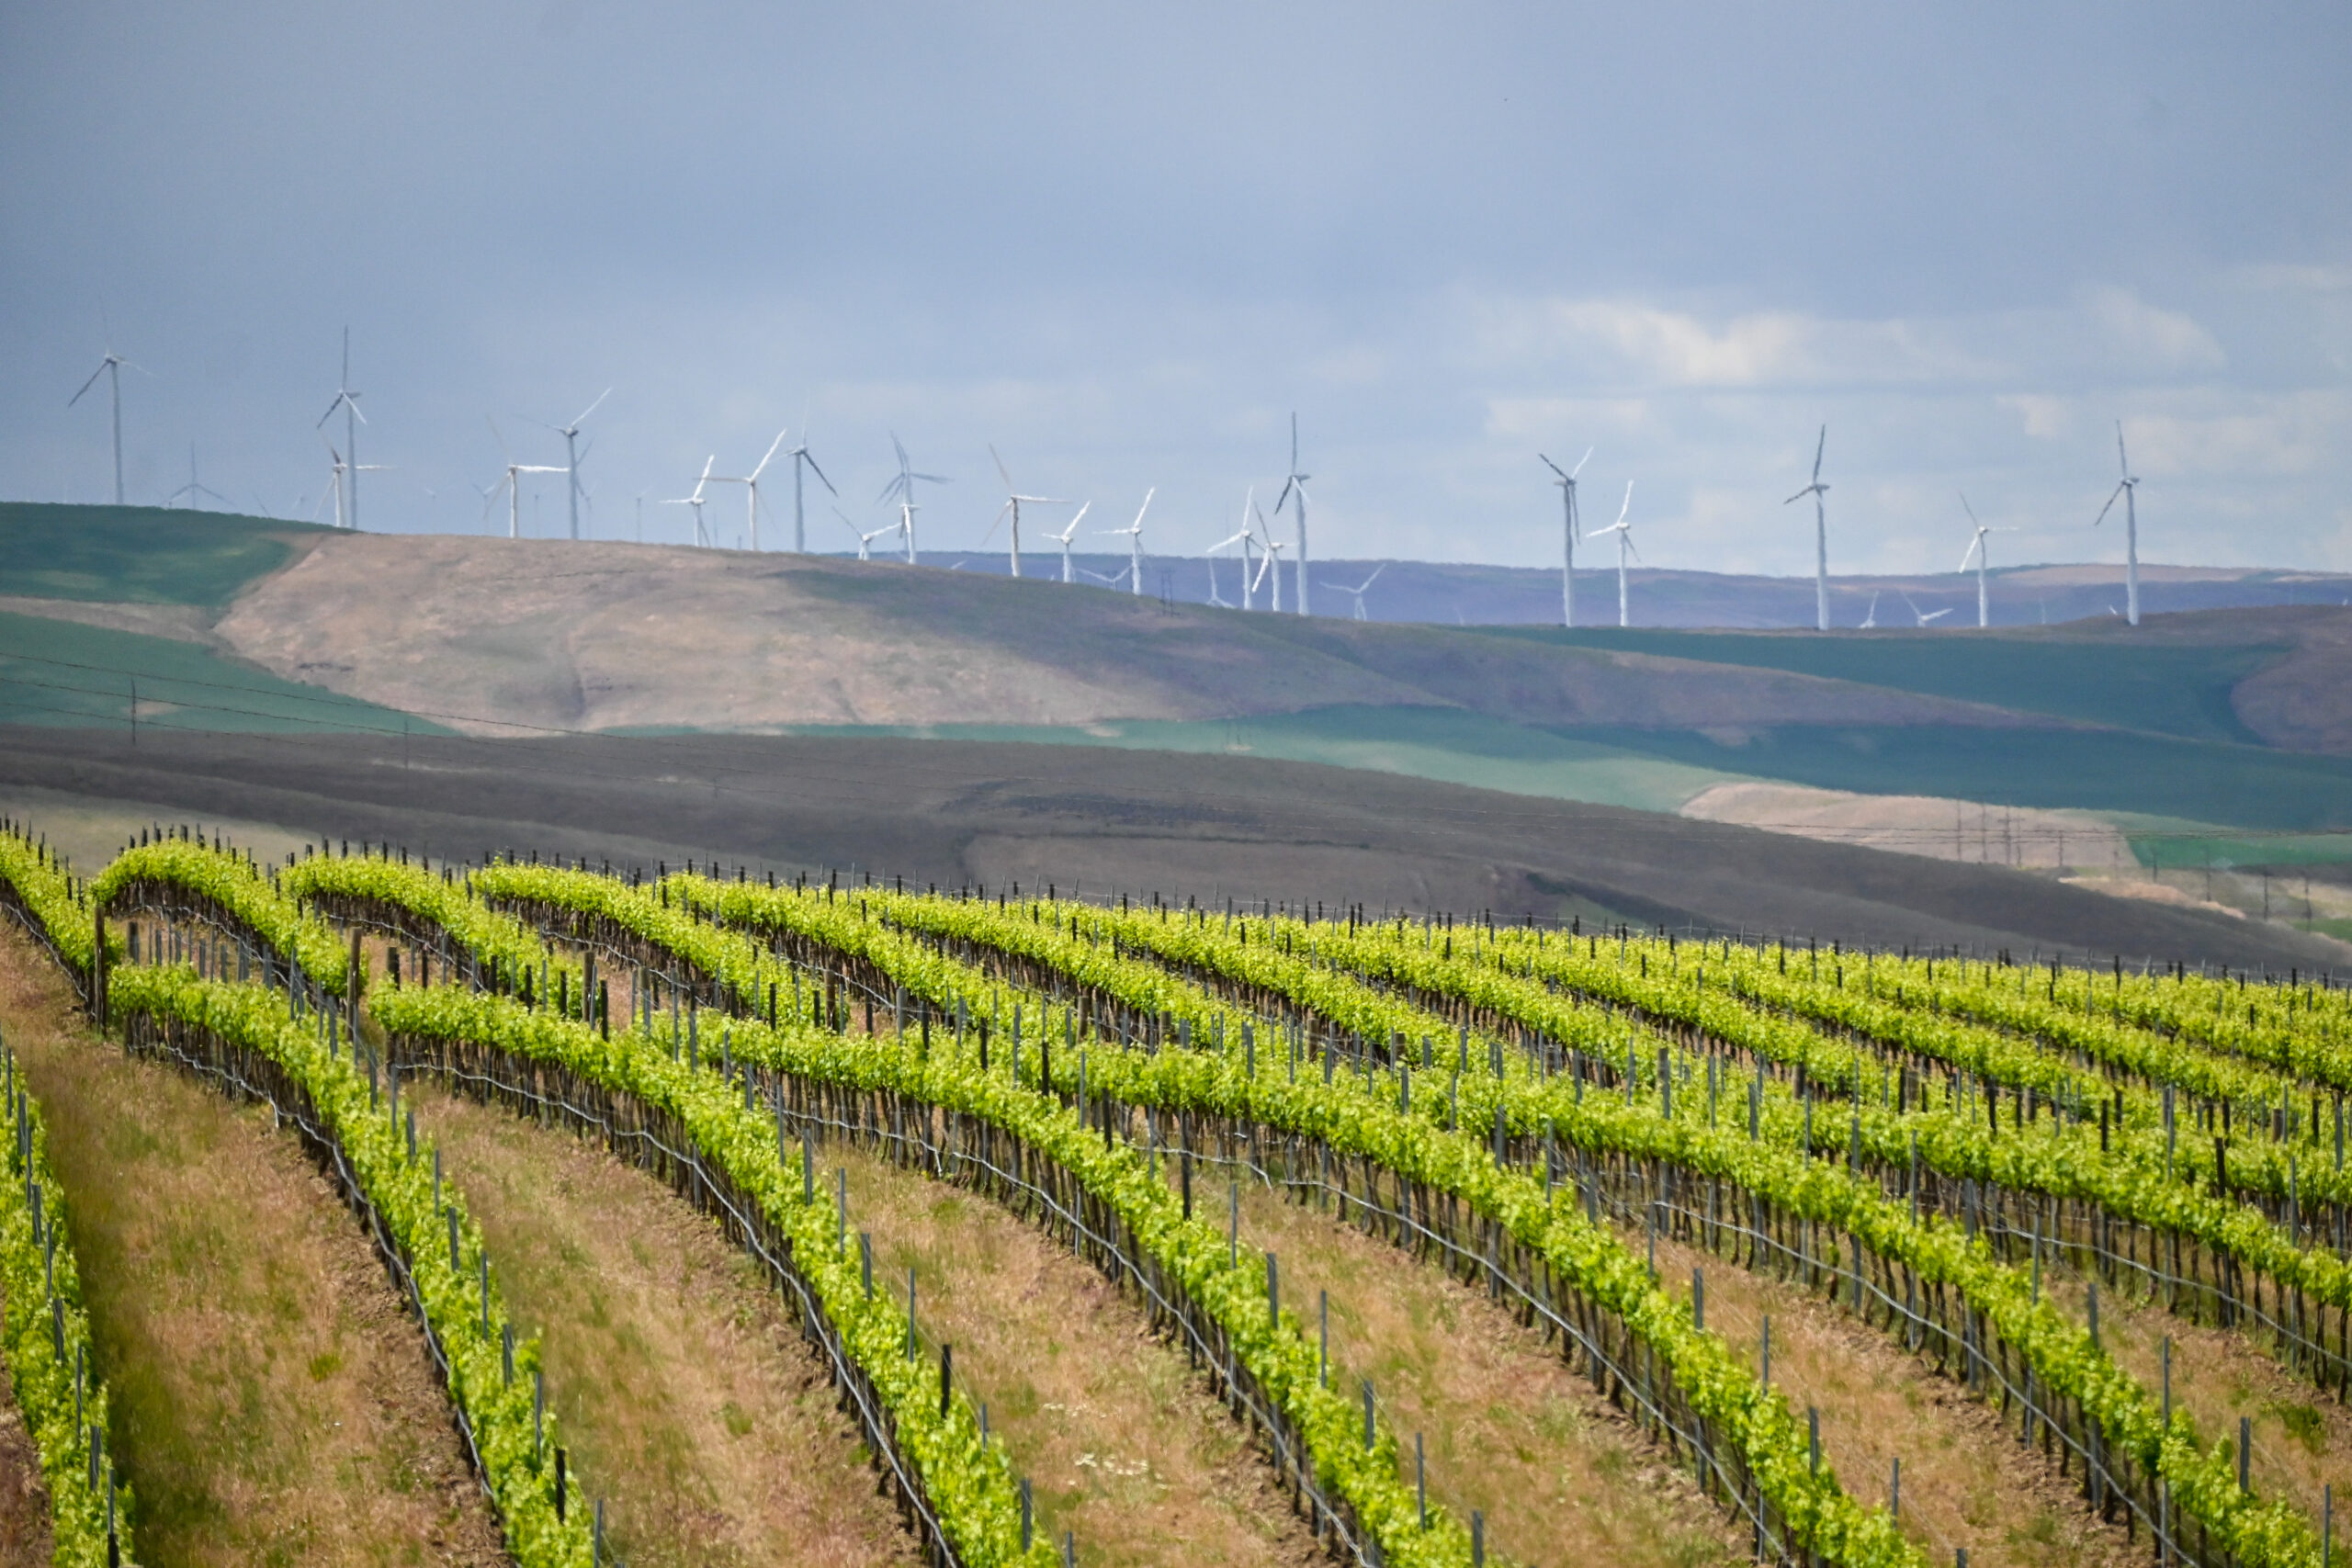 Bright green rows of grape vines curve on rolling hills. Brown and green hills and wind turbines are in the distance.